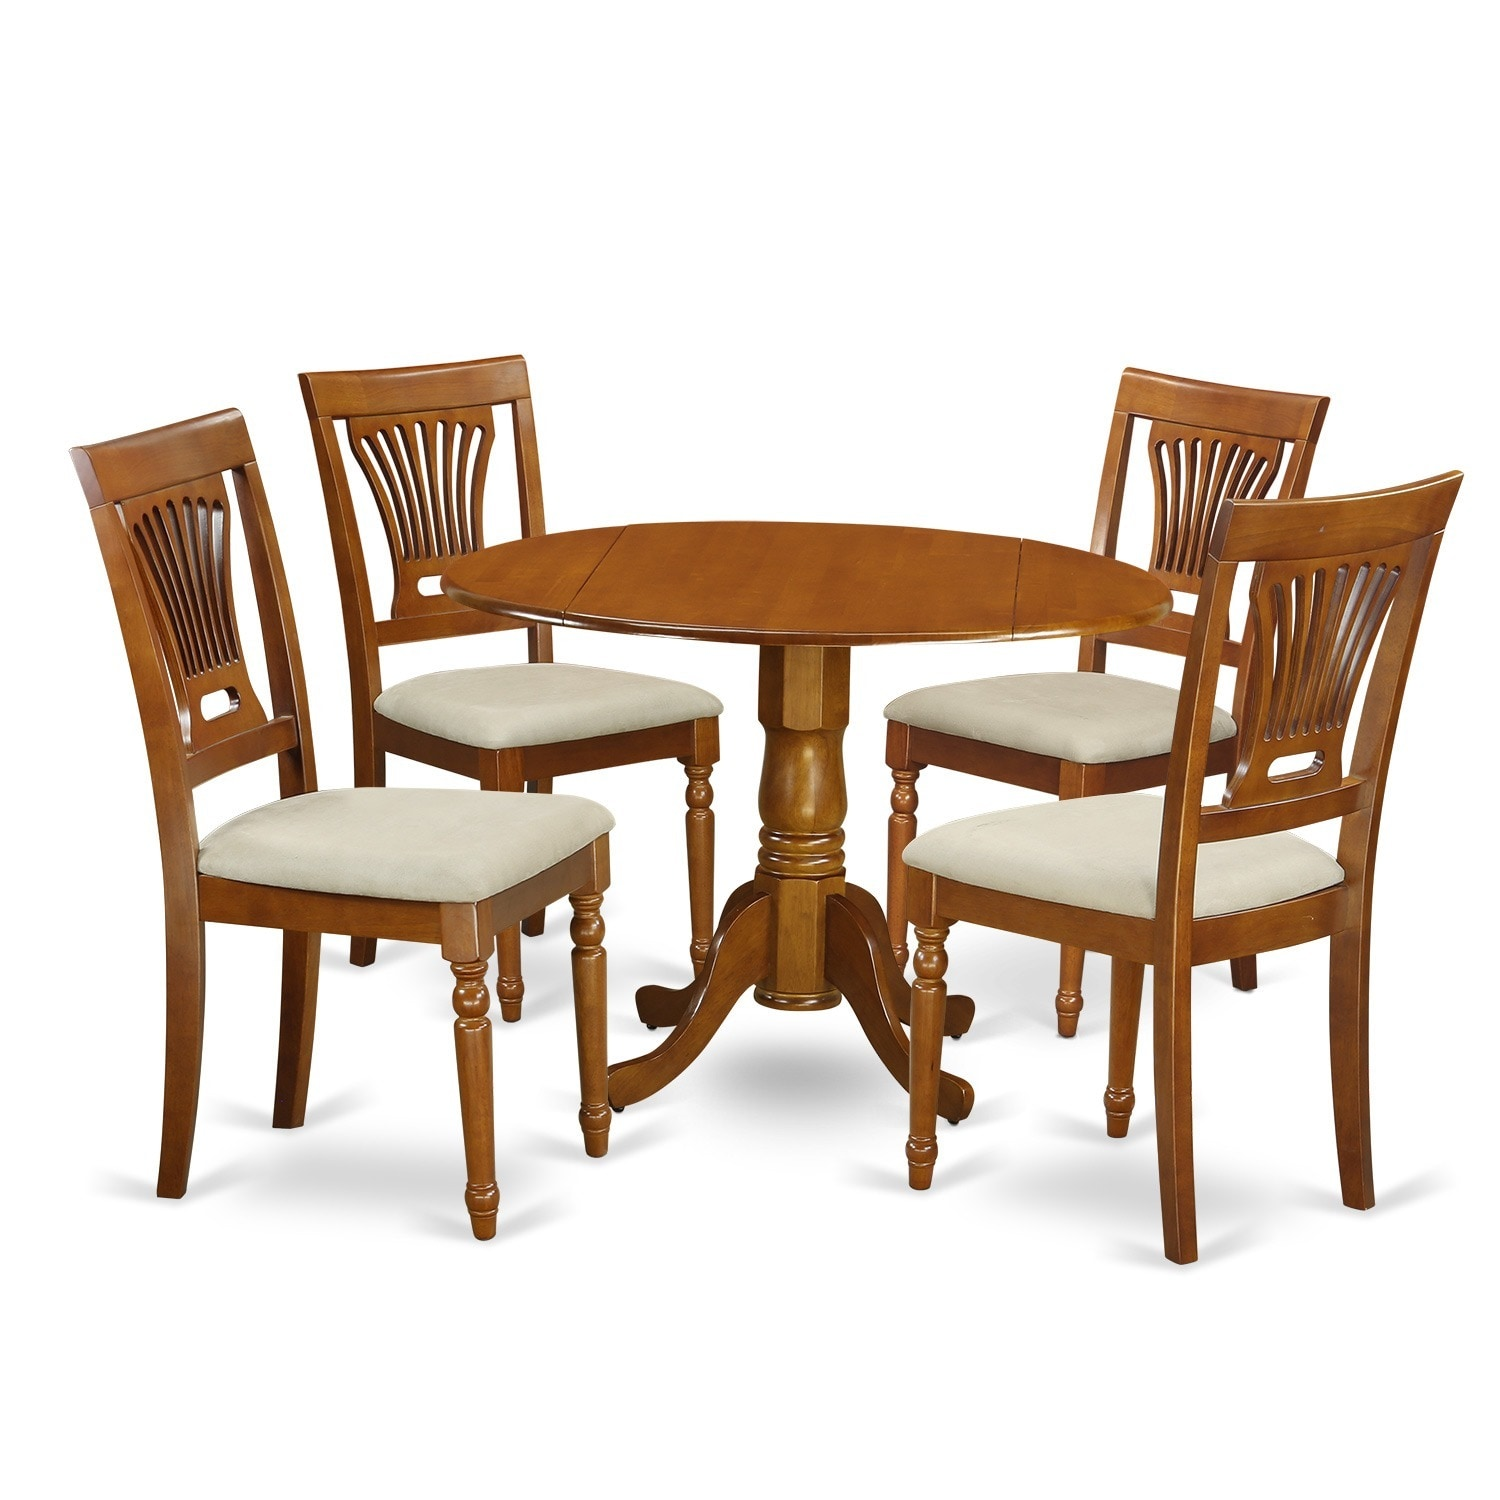 Saddle Brown Round Table Plus 4 Dinette Chairs 5-piece Dining Set ...